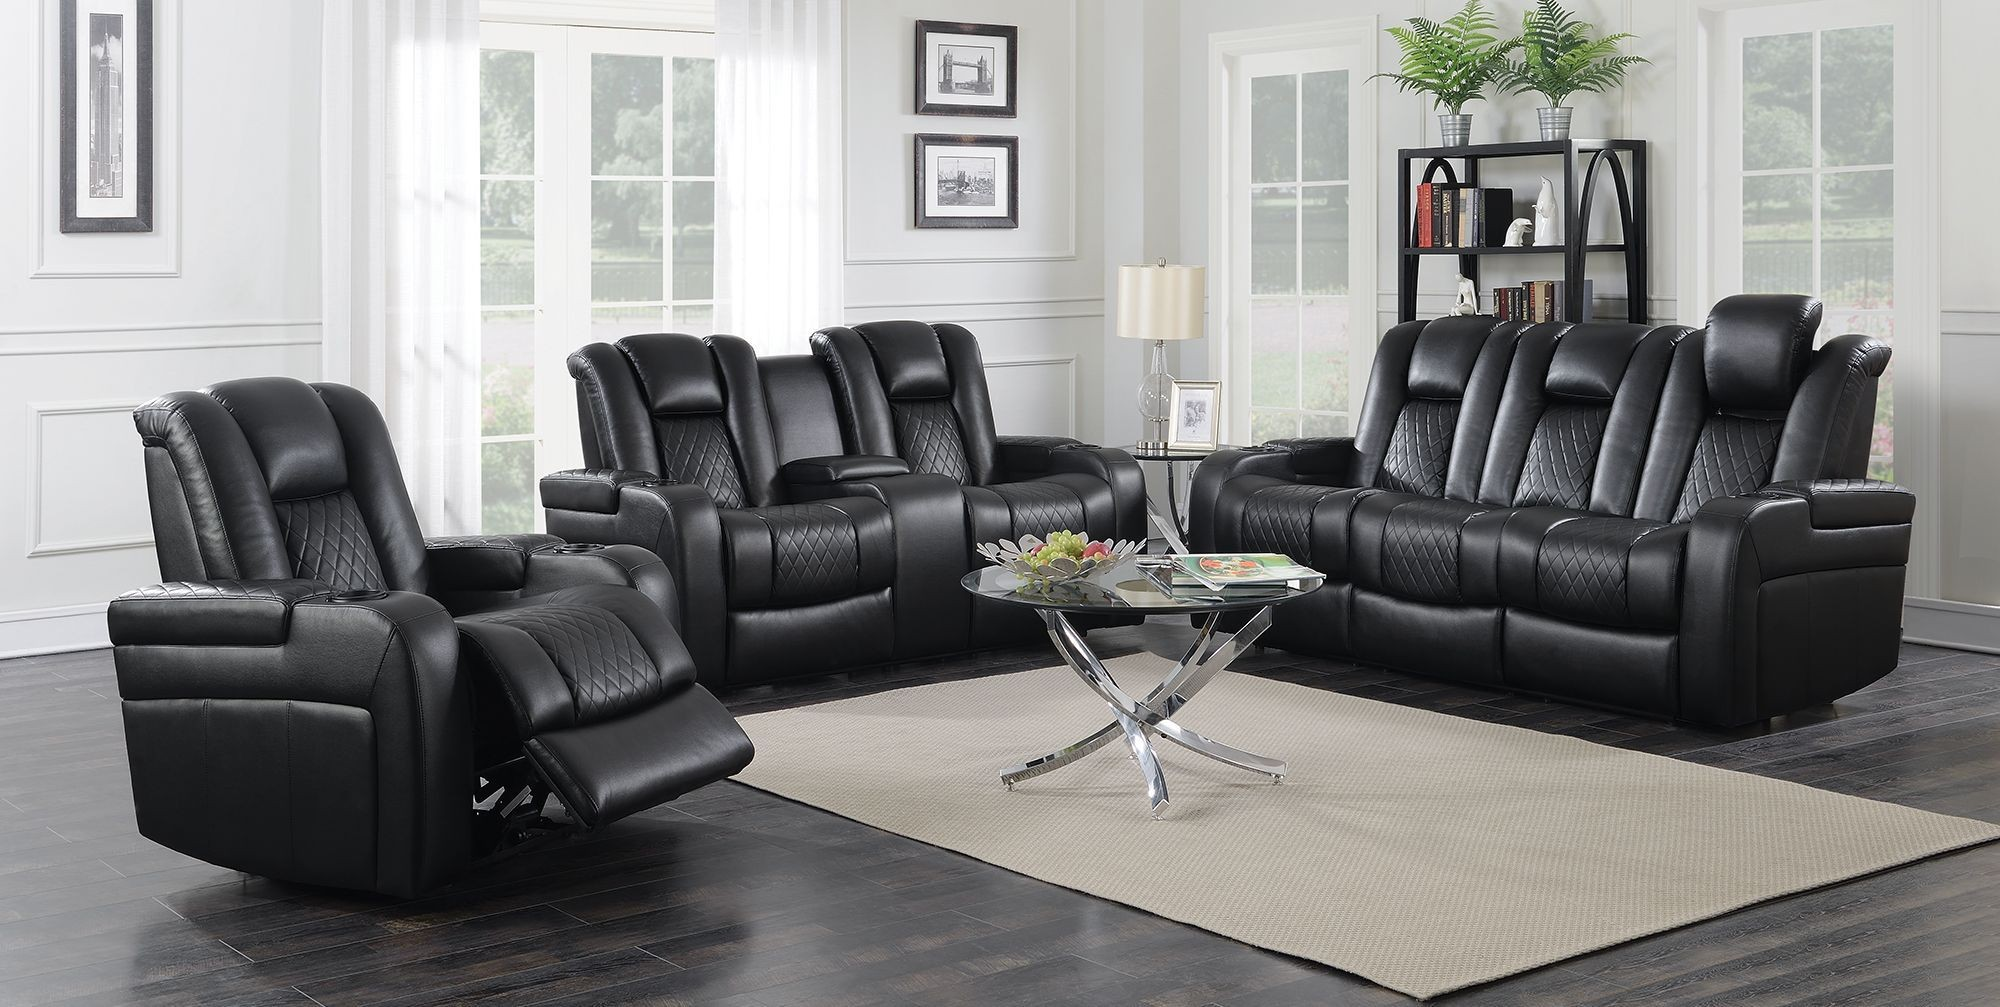 Delangelo Motion Black Power Motion Living Room Set From